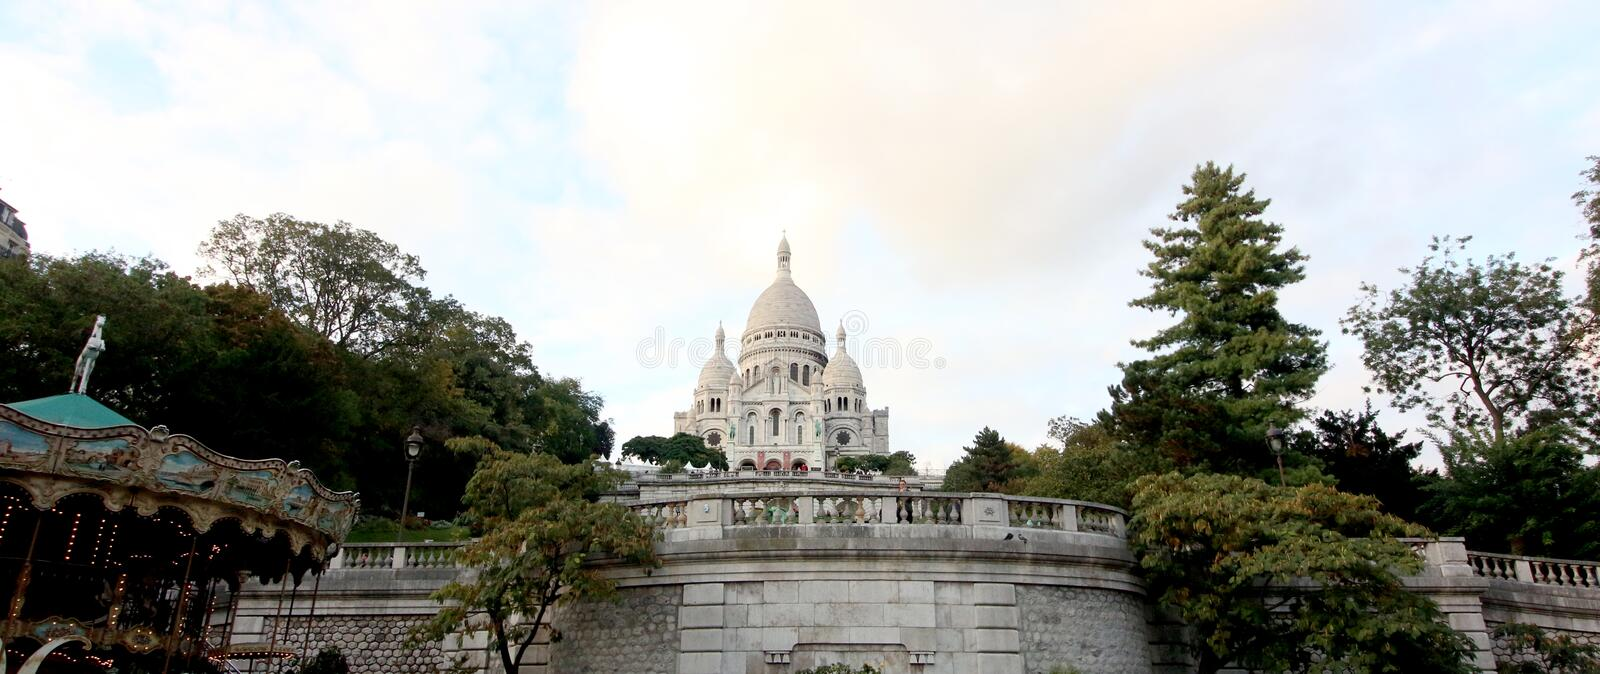 Sacre Coeur Basilica, Paris, France stock photo